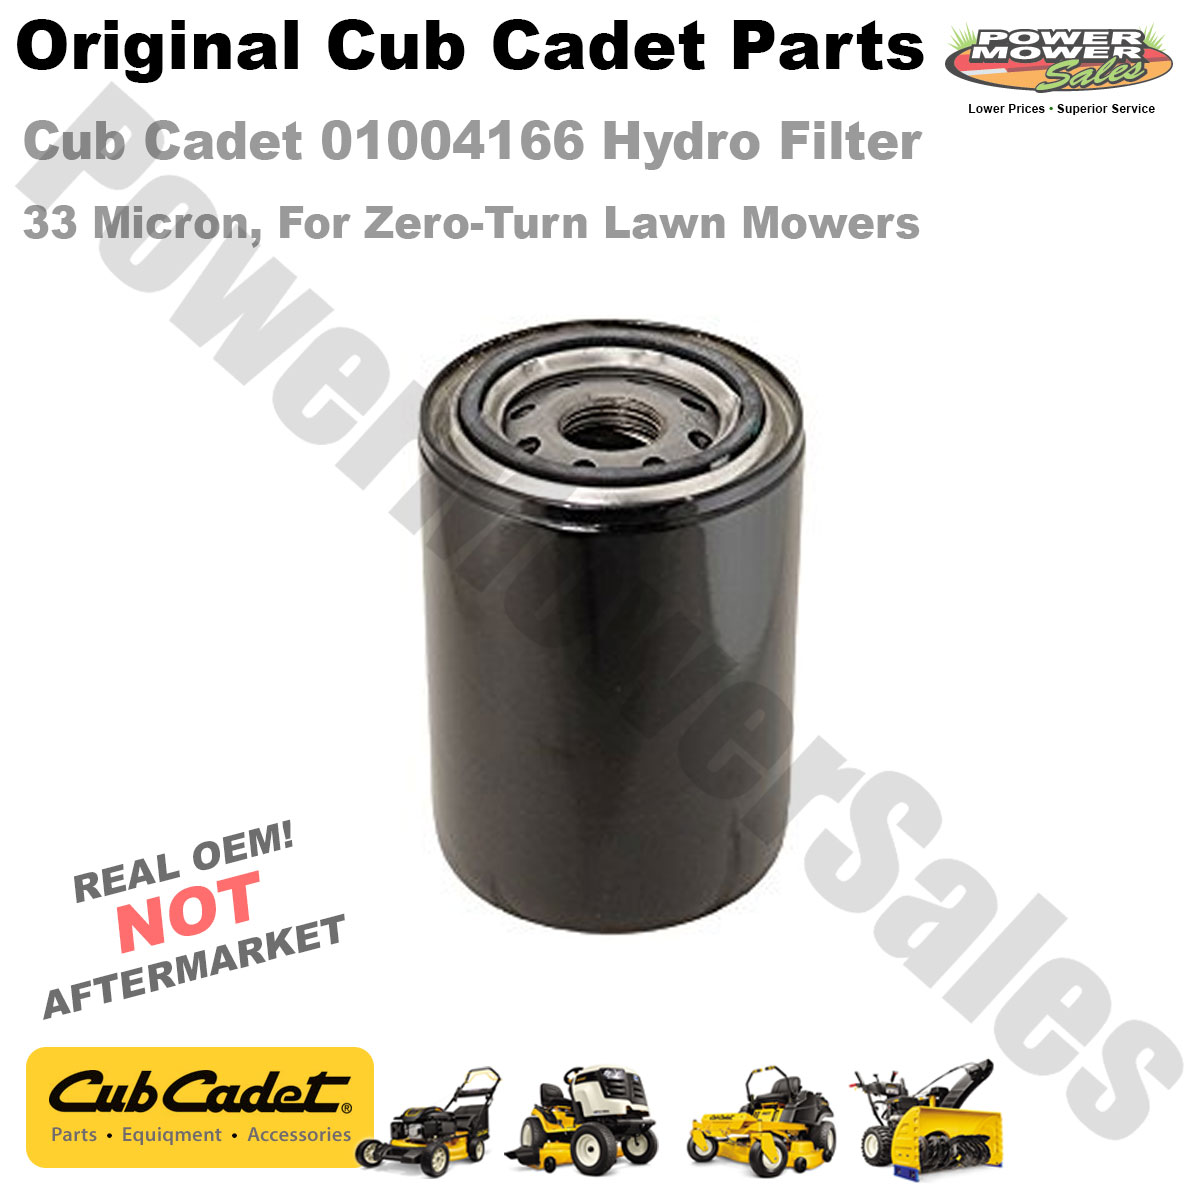 Details about Cub Cadet 01004166 Hydraulic Filter (33 Microns) for  Zero-Turn Lawn Mowers